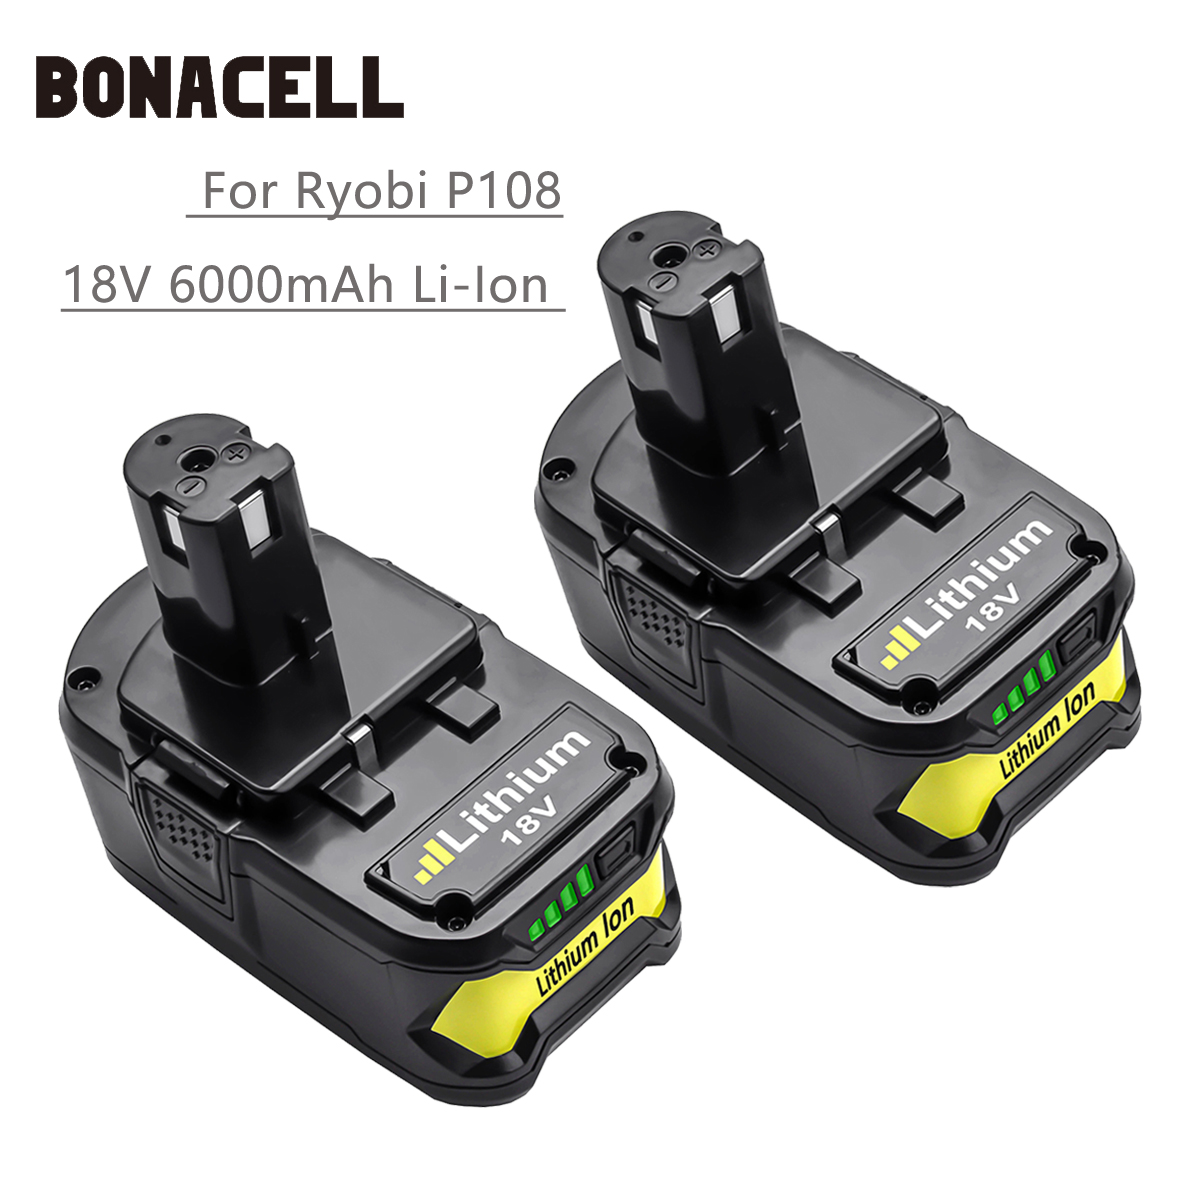 Bonacell Battery For Ryobi 18V 6000mAh P108 RB18L40 Lithium Ion Rechargeable Battery Pack Power Tools Battery P2000 P310 L30